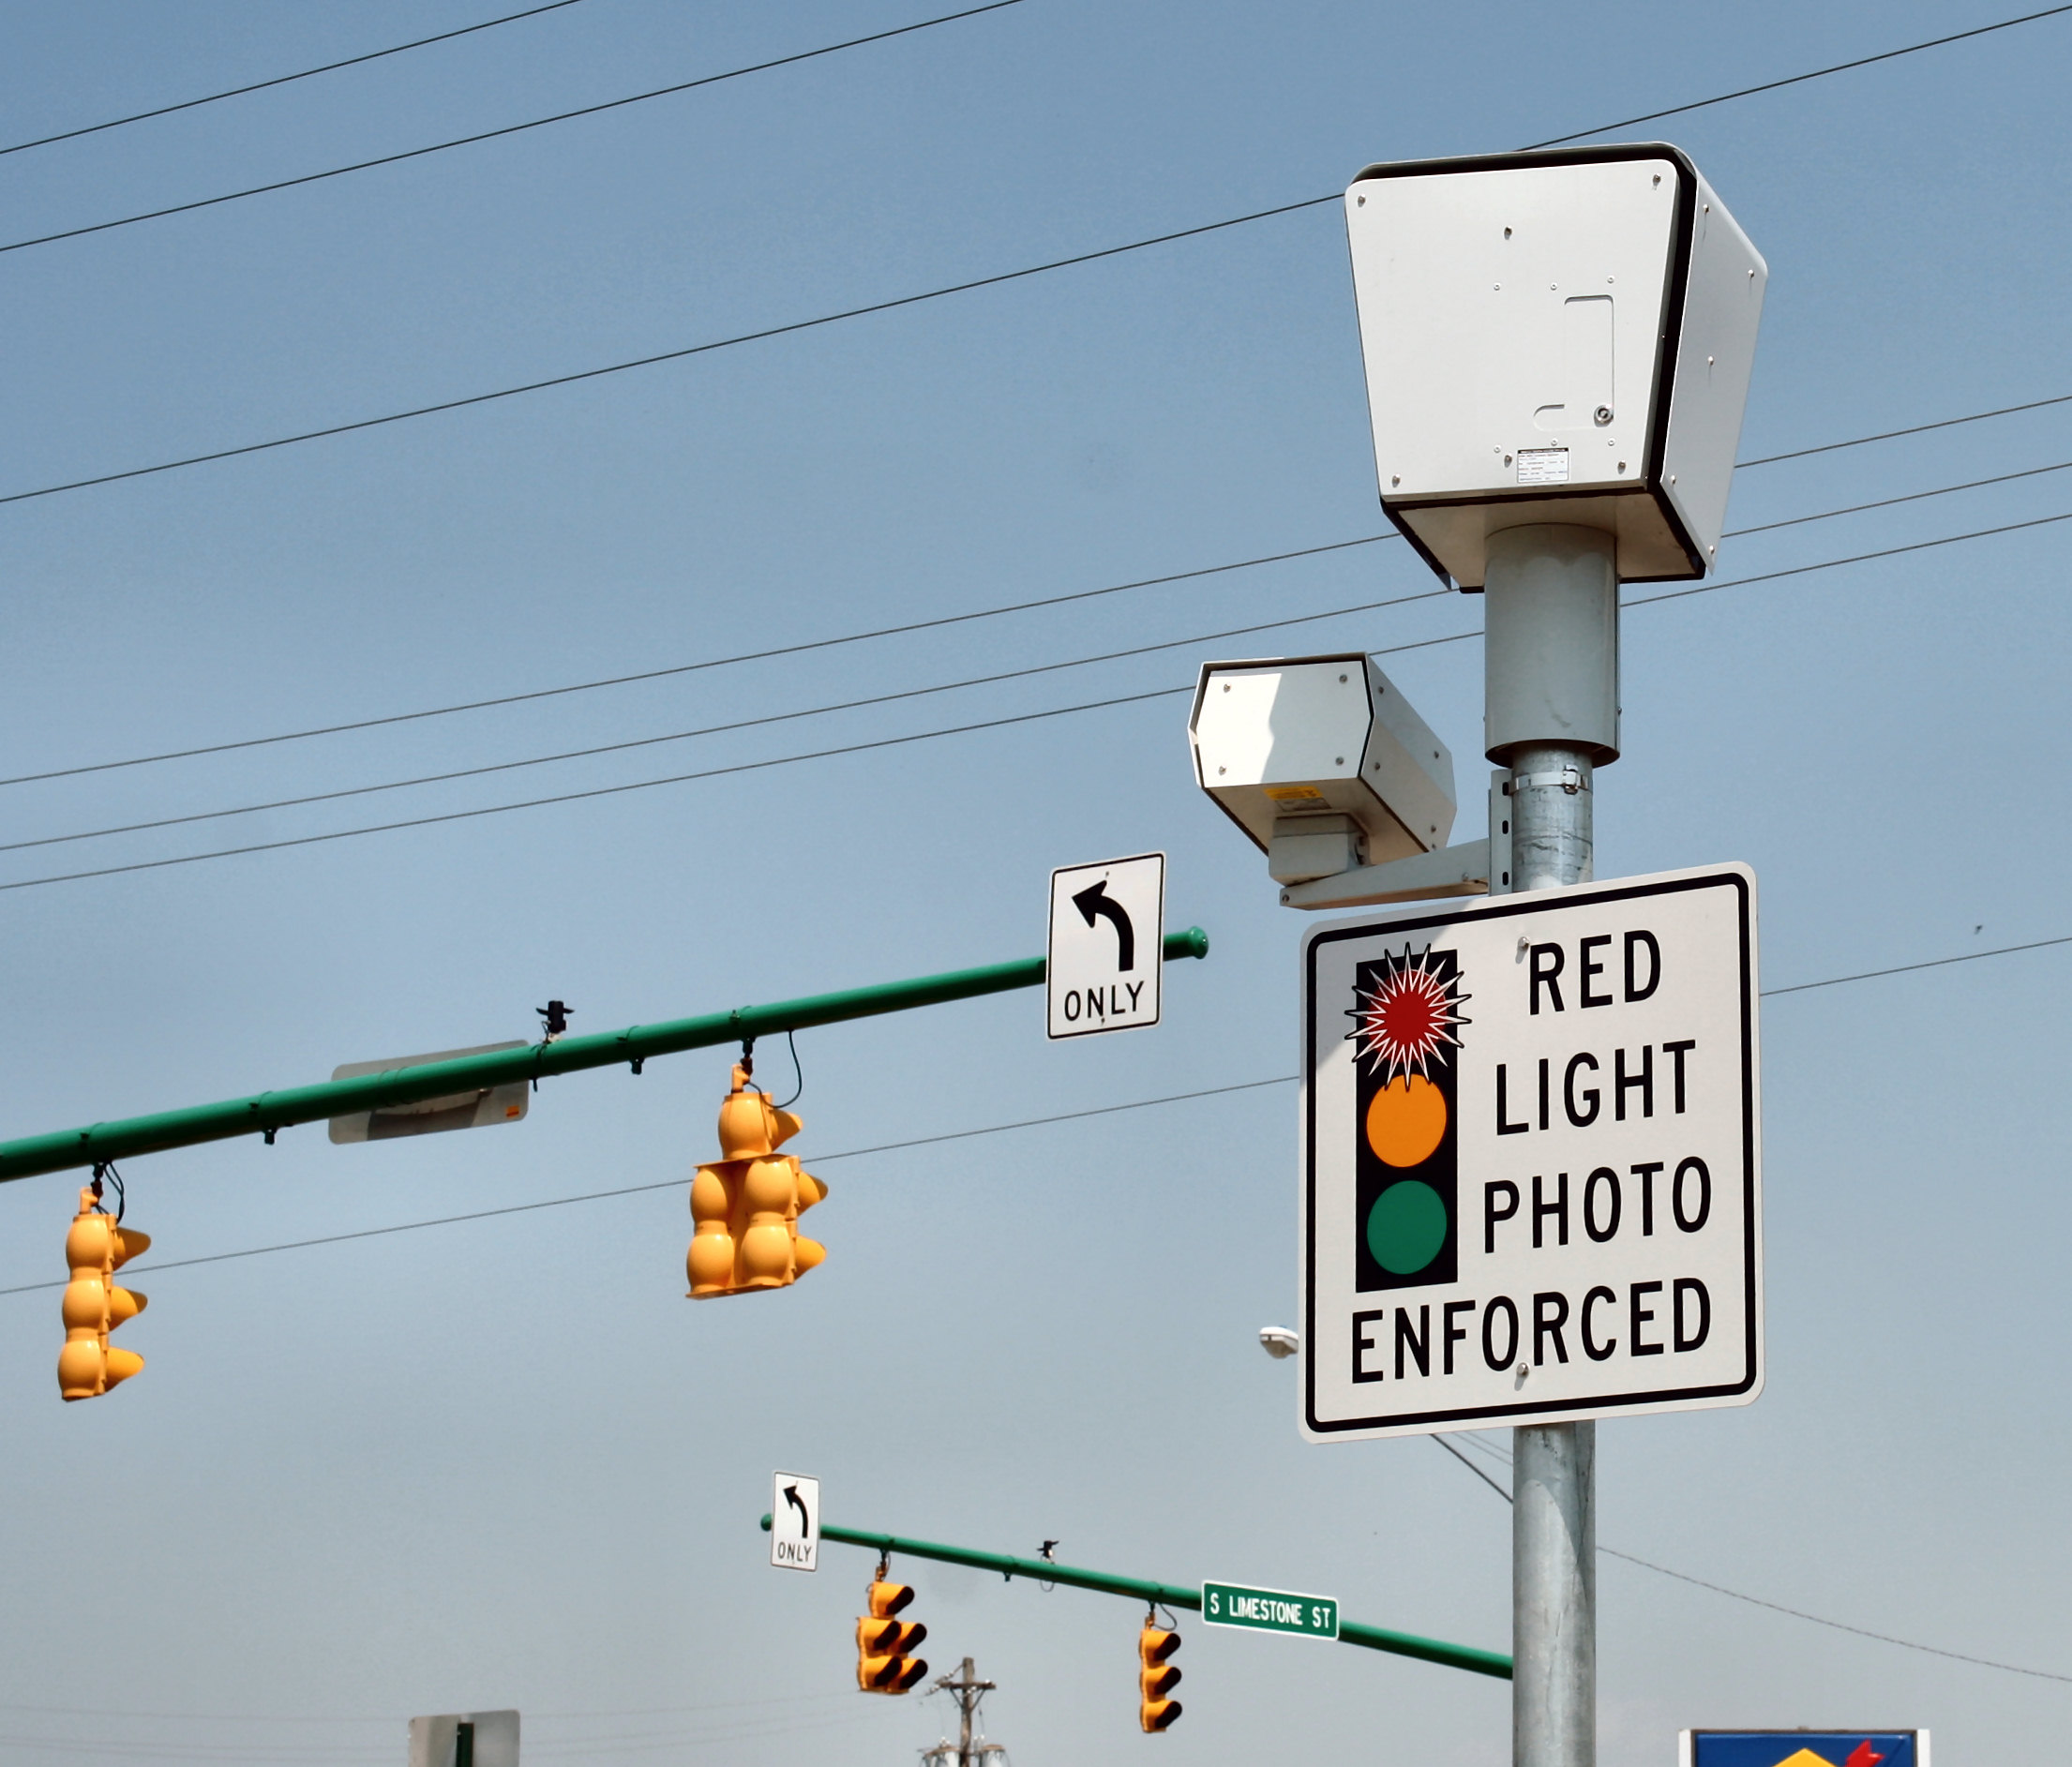 How To Beat A Photo Enforced Speeding Ticket Or Red Light